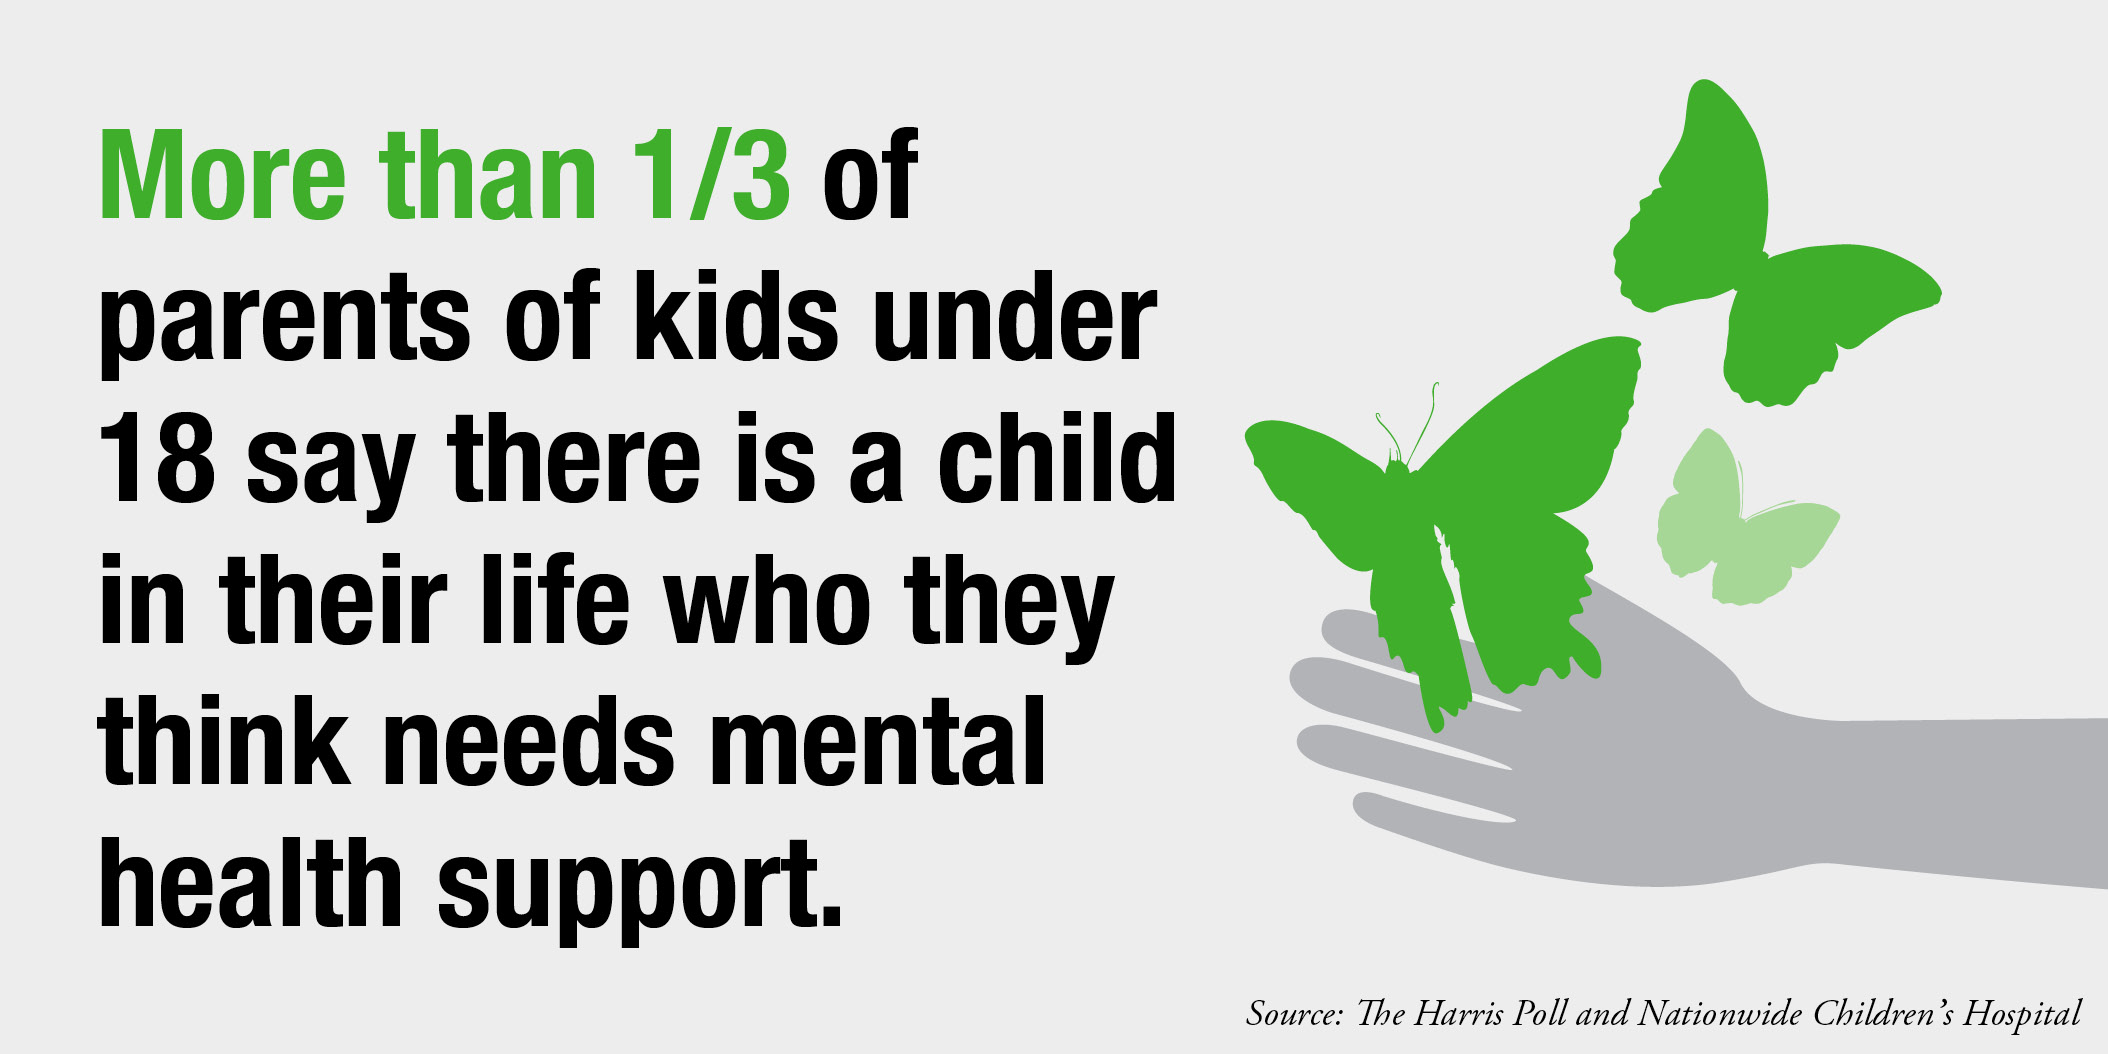 1/3 of parents say they know a child who needs mental health support